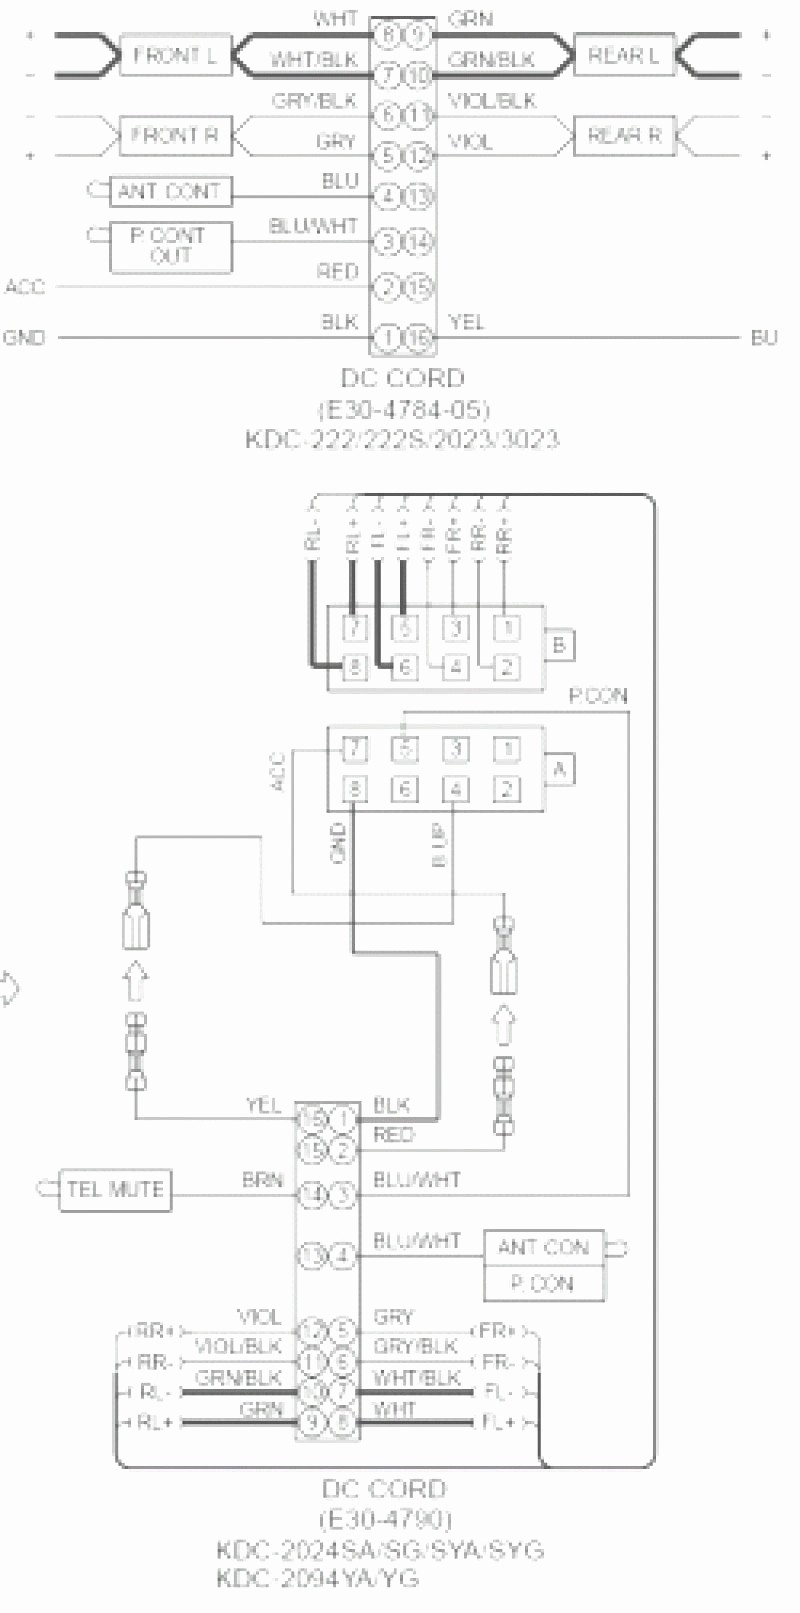 Kenwood Dpx503bt Wiring Diagram